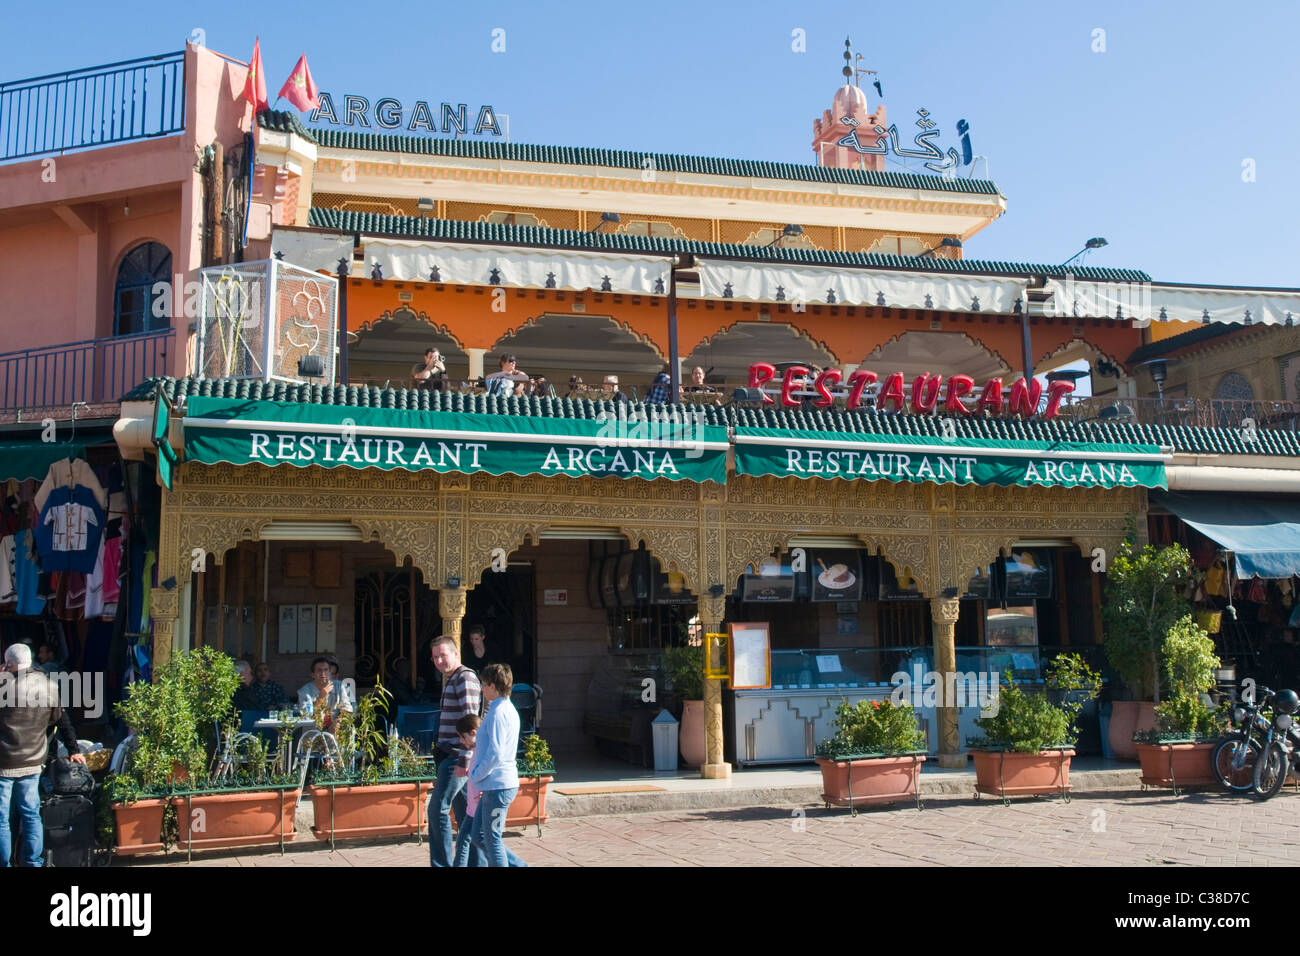 Cafe argana at djemma el fna marrakech morocco stock for Argana moroccan cuisine